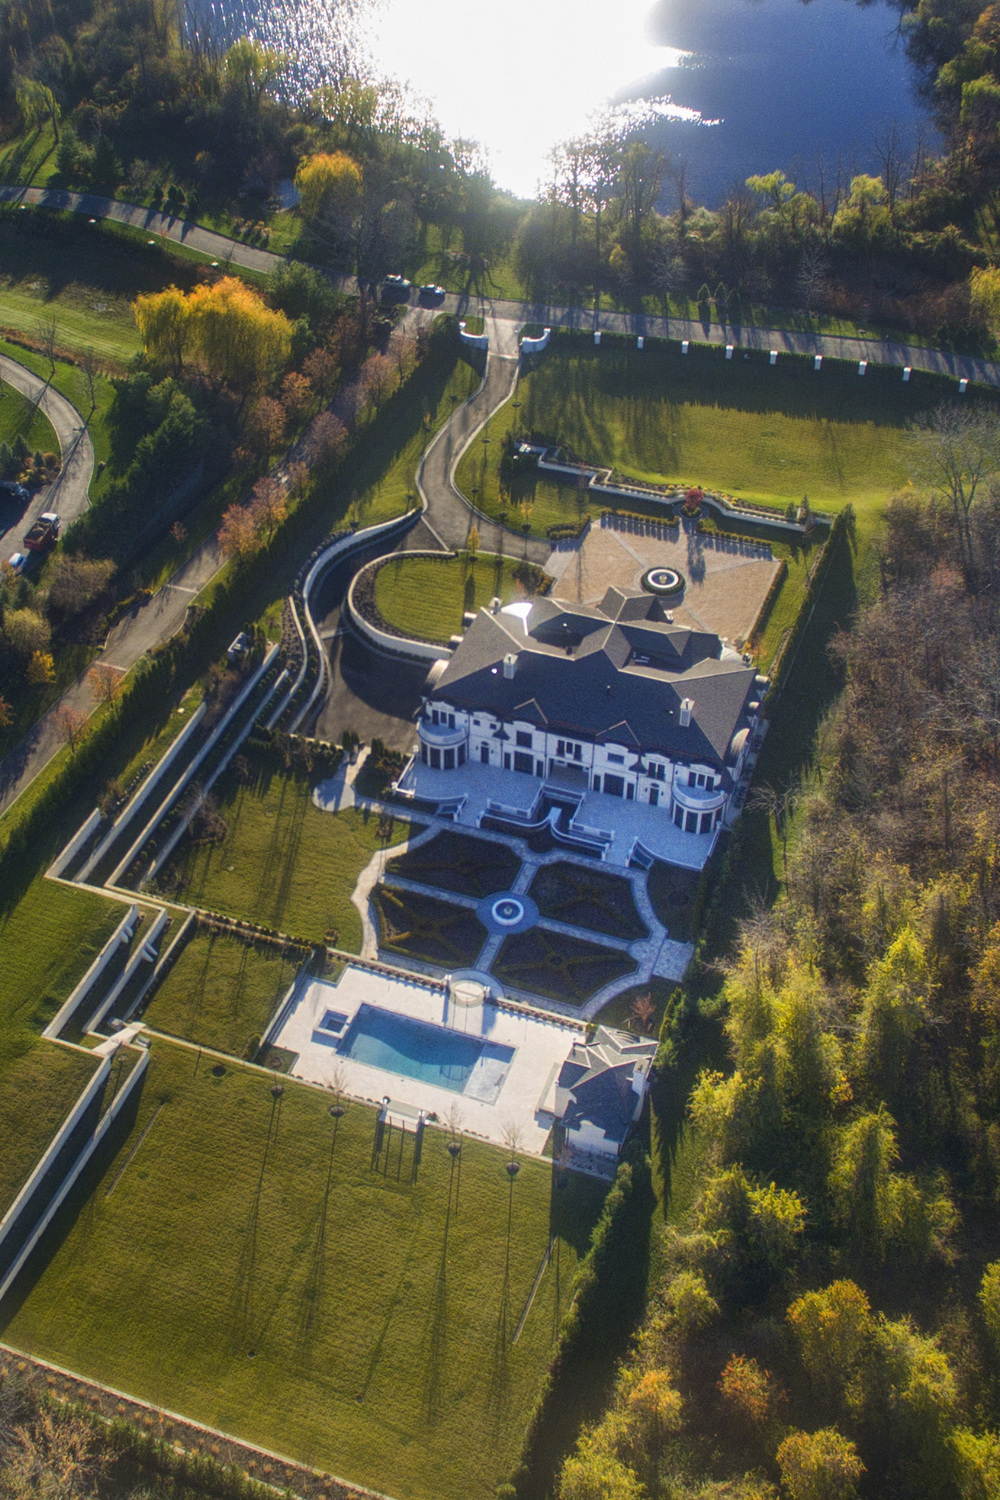 20151120-15dupont-drone_house9.jpg